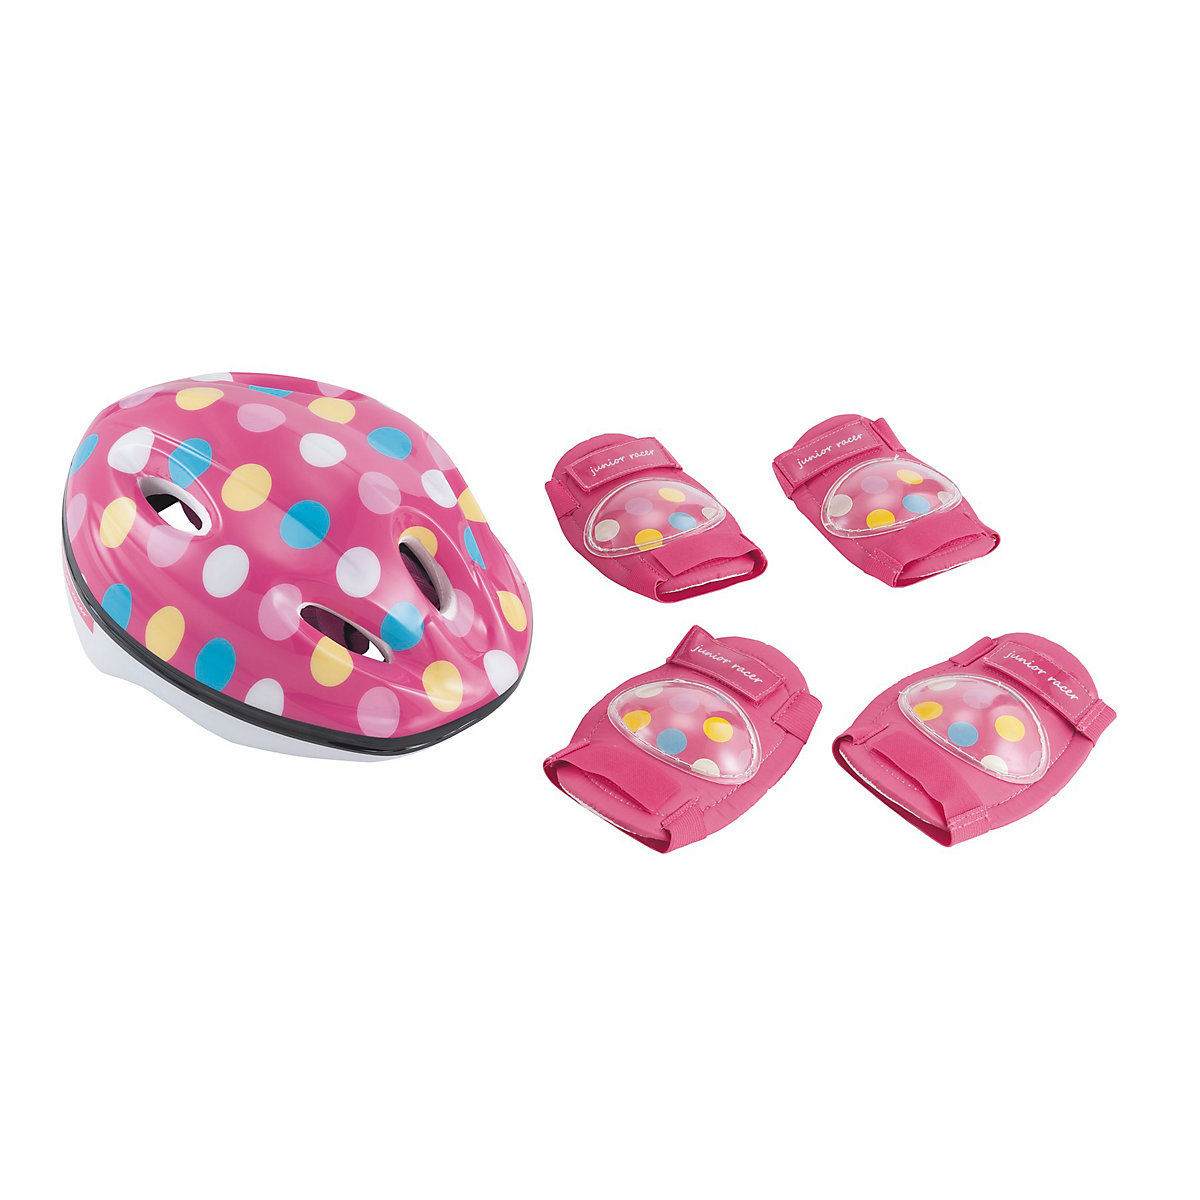 New ELC Boys and Girls Spotty Safety Set Toy From 3 years - Spotty Gifts